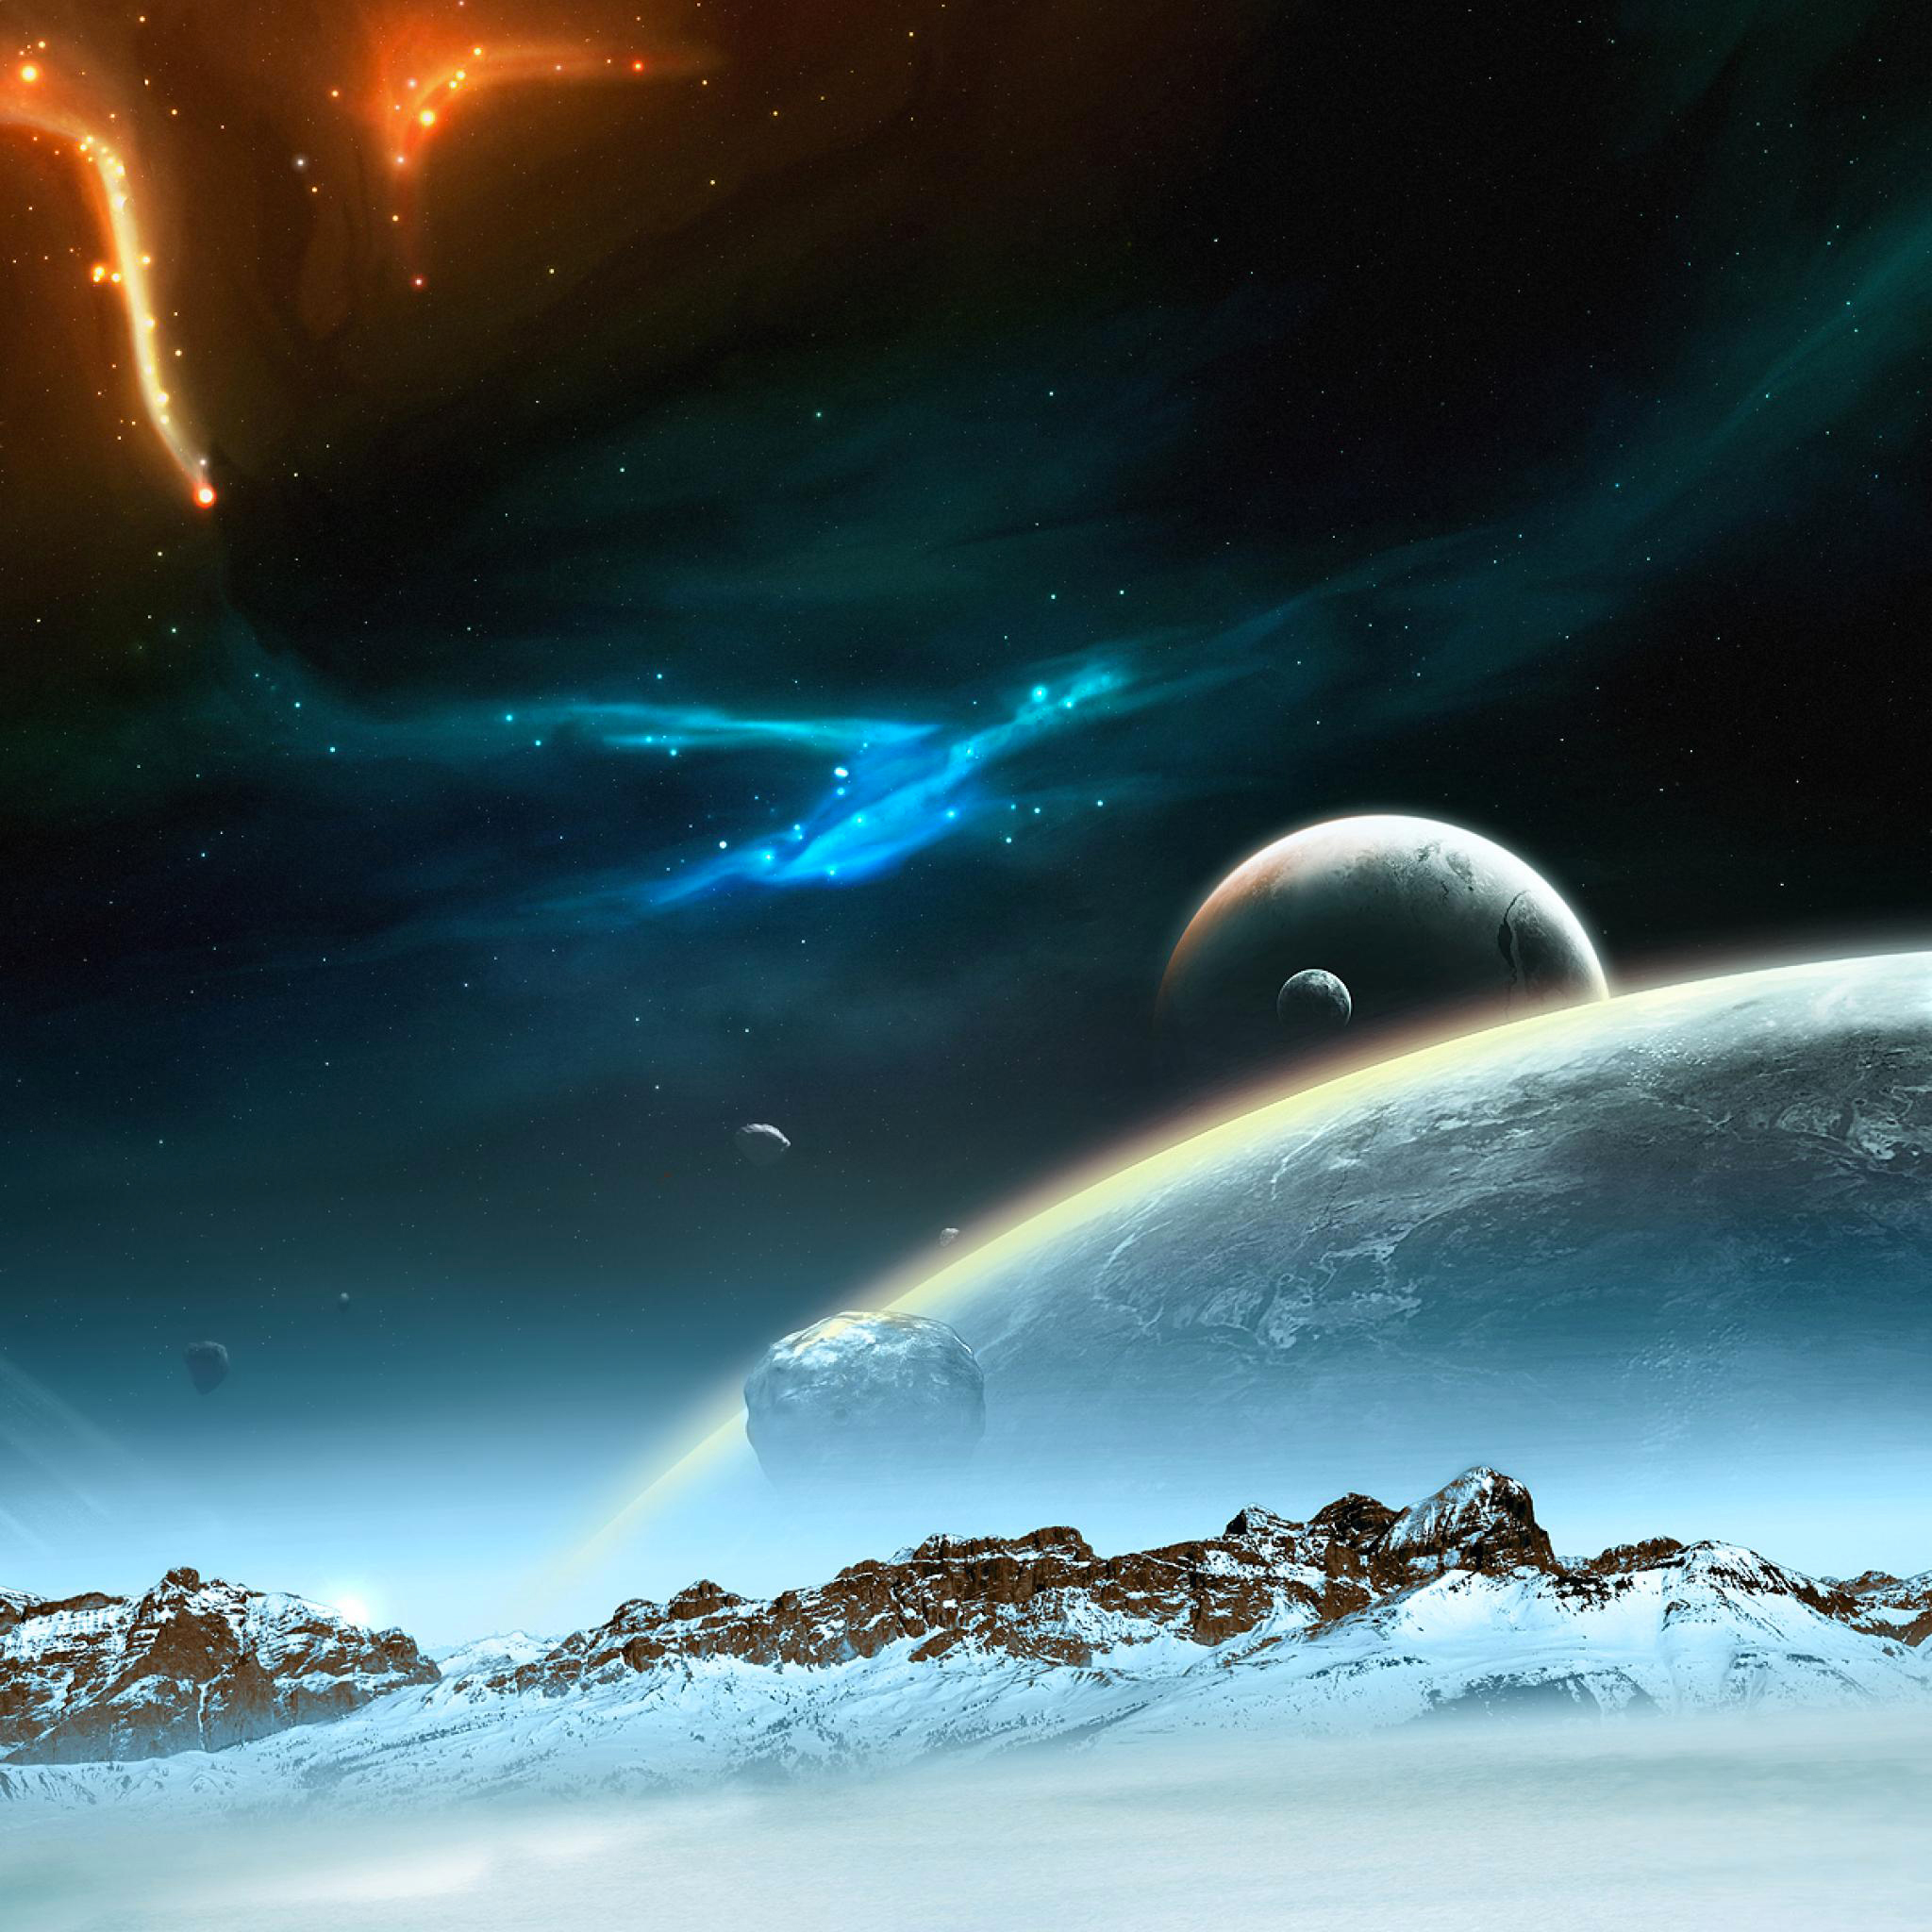 Space-in-mountain-3Wallpapers-iPad-Retina